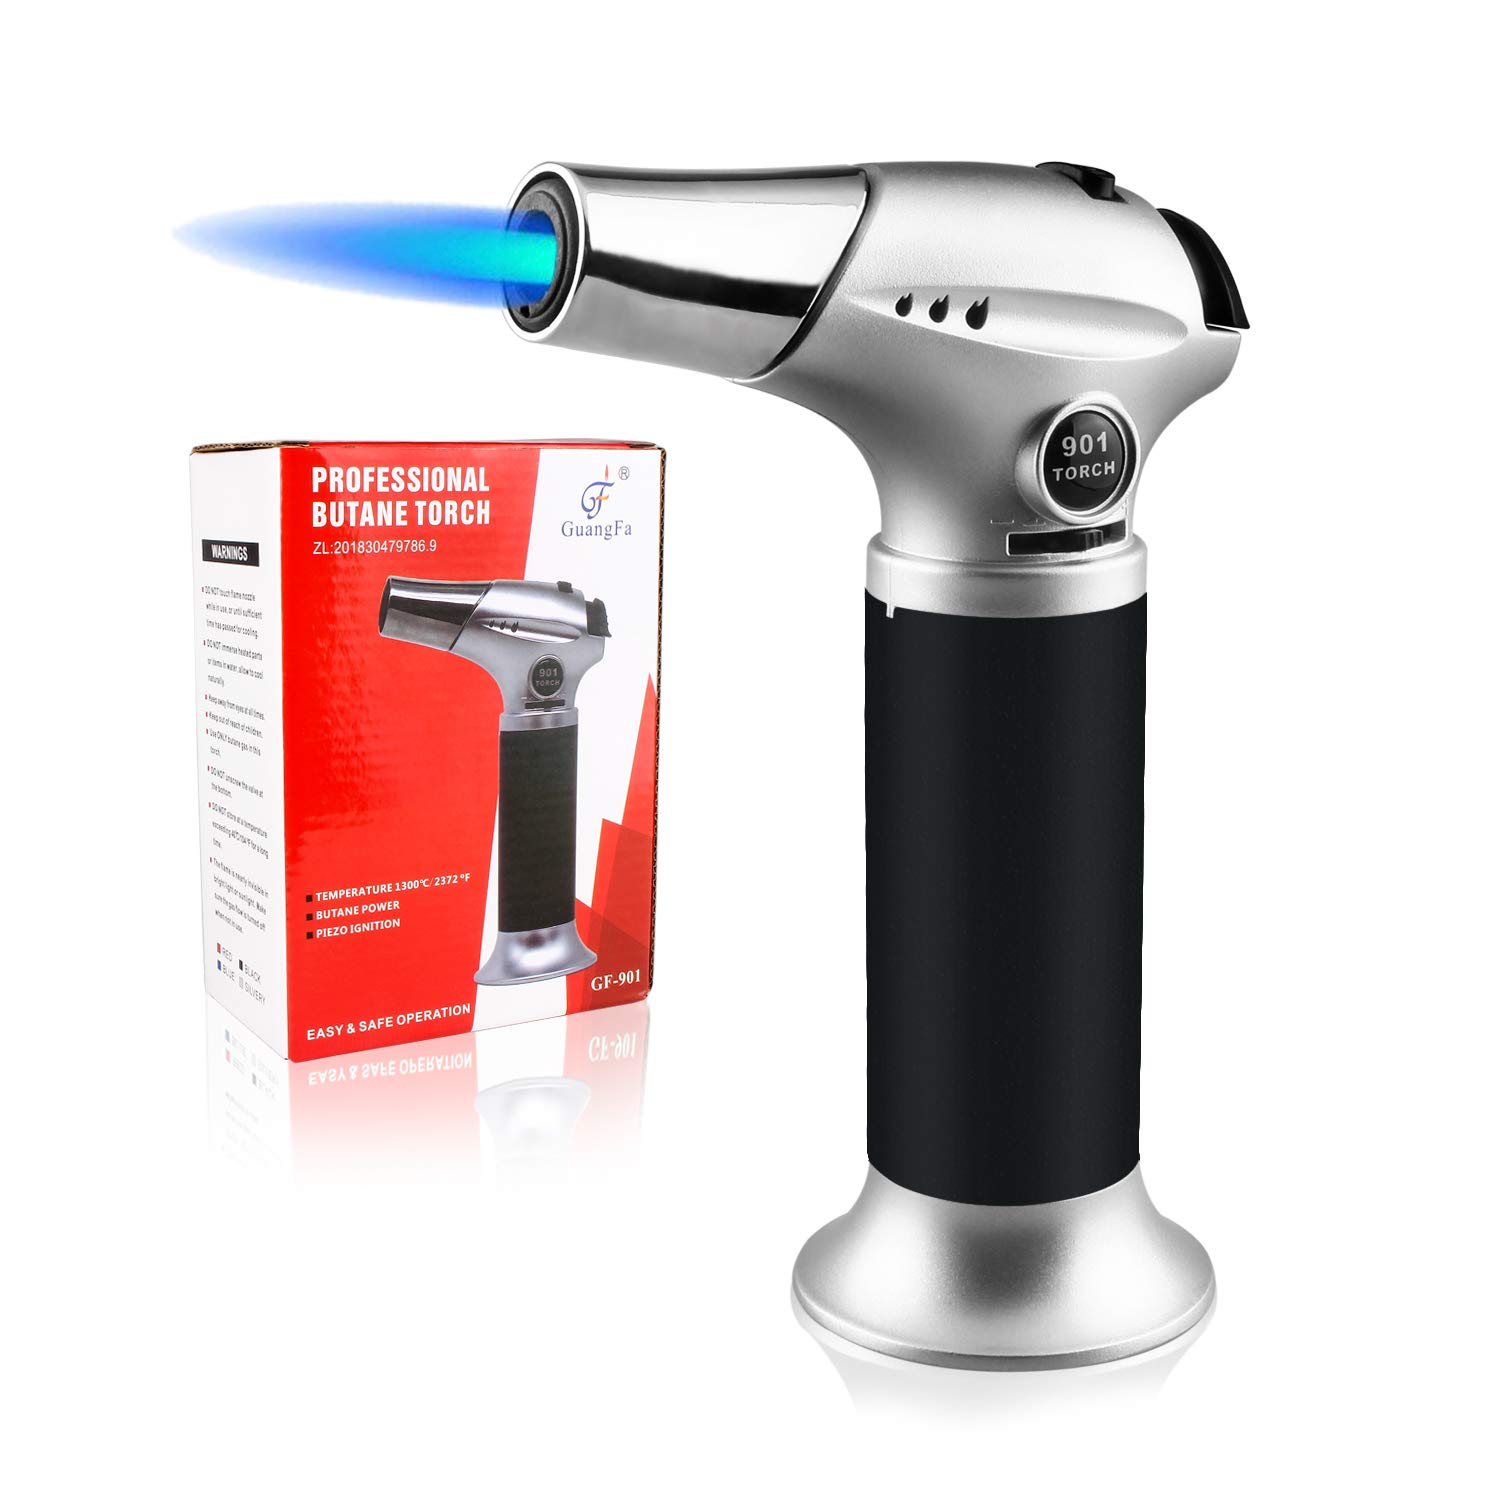 Blow Torch Lighter, Culinary Torch, Refillable Kitchen Butane Torch with Safety Lock and Adjustable Flame Perfect for DIY, Creme Brulee, BBQ and Baking, Butane Gas Not Included, Black by Sondiko (Image #1)